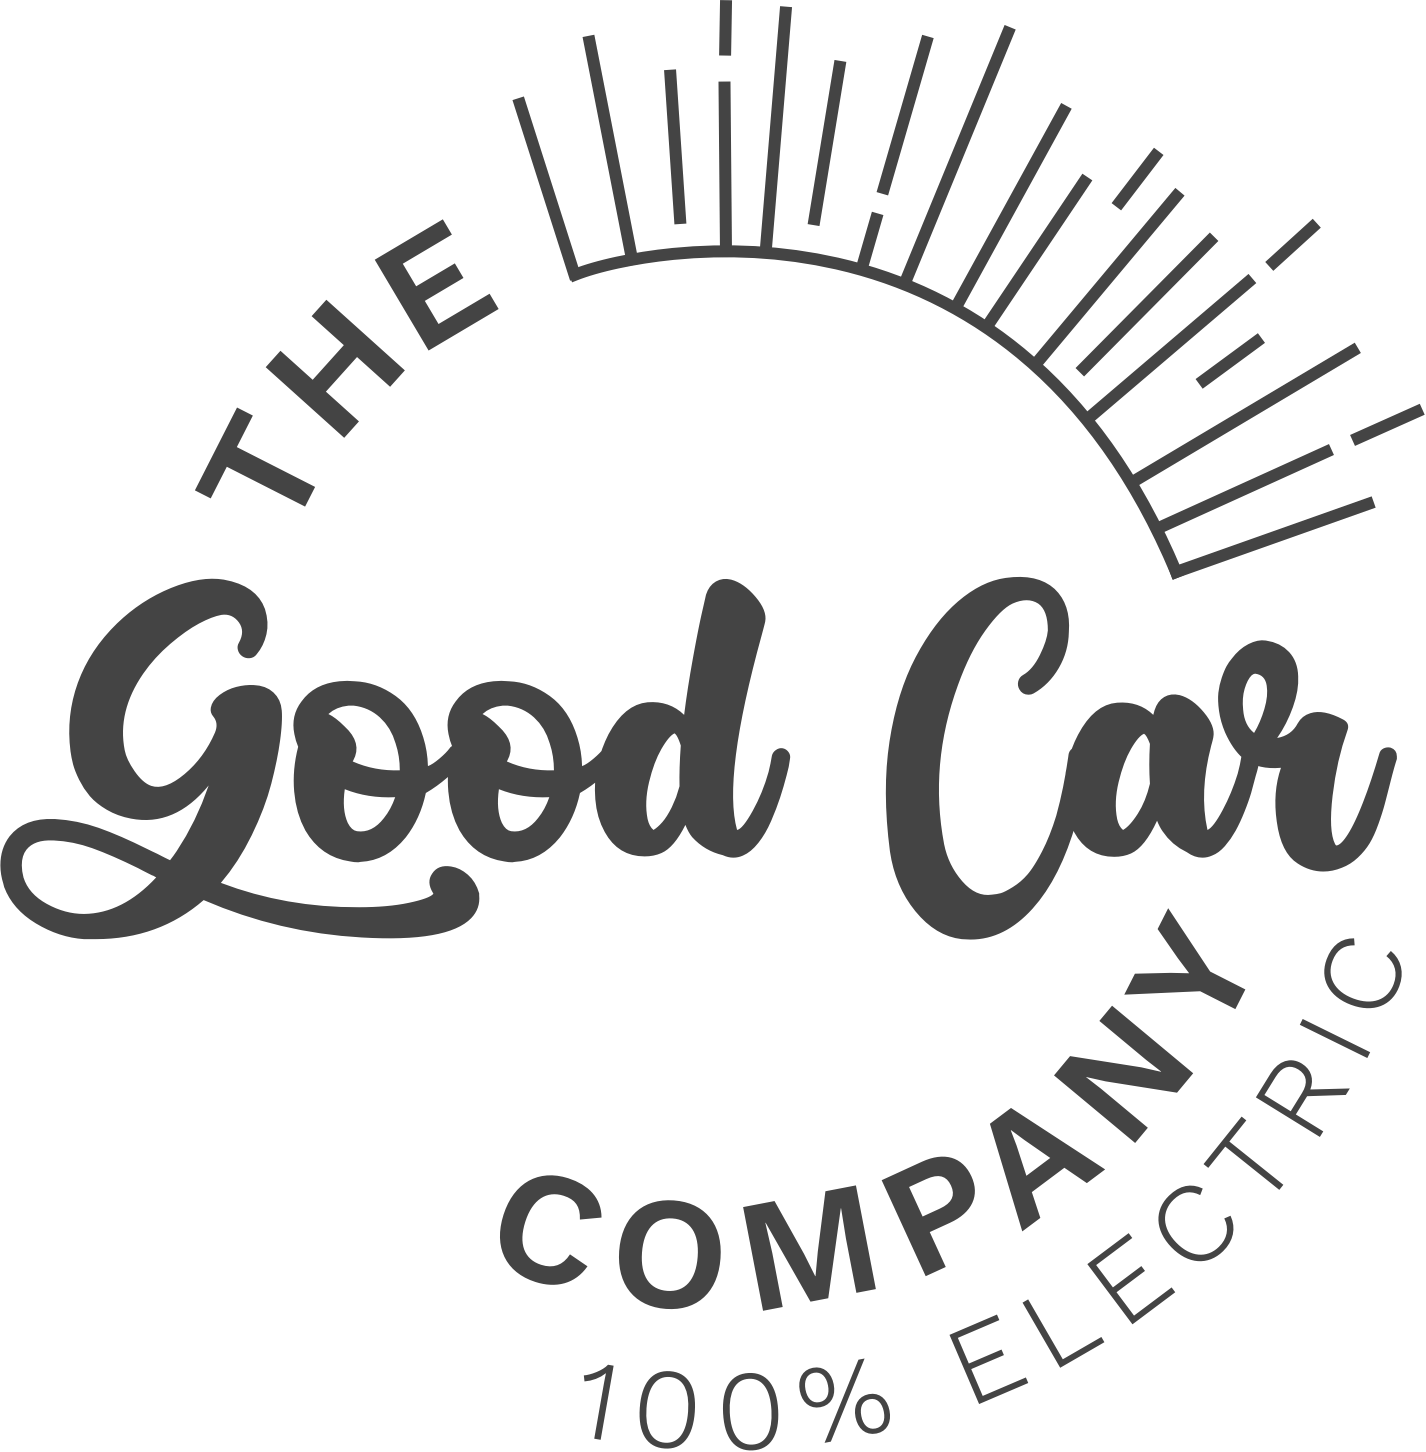 The Car Company >> The Good Car Company Affordable Electric Cars For